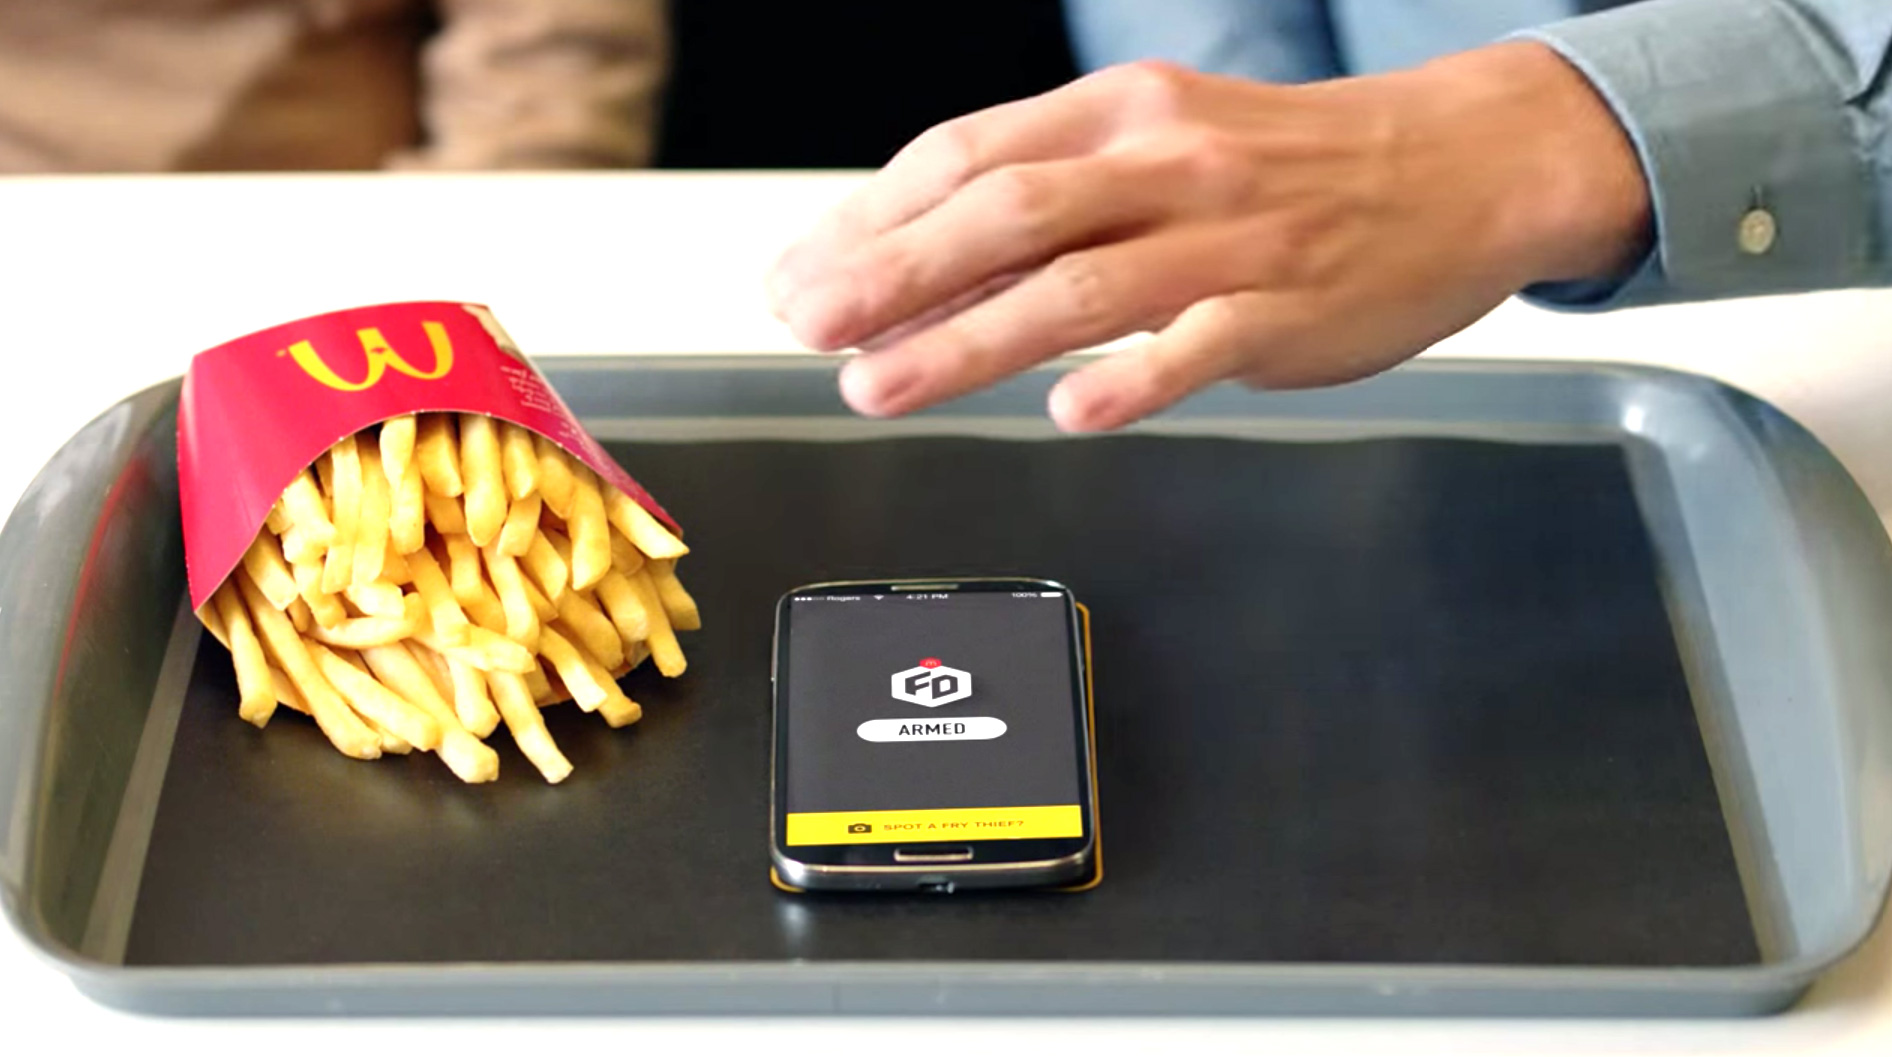 App do McDonald's protege fritas